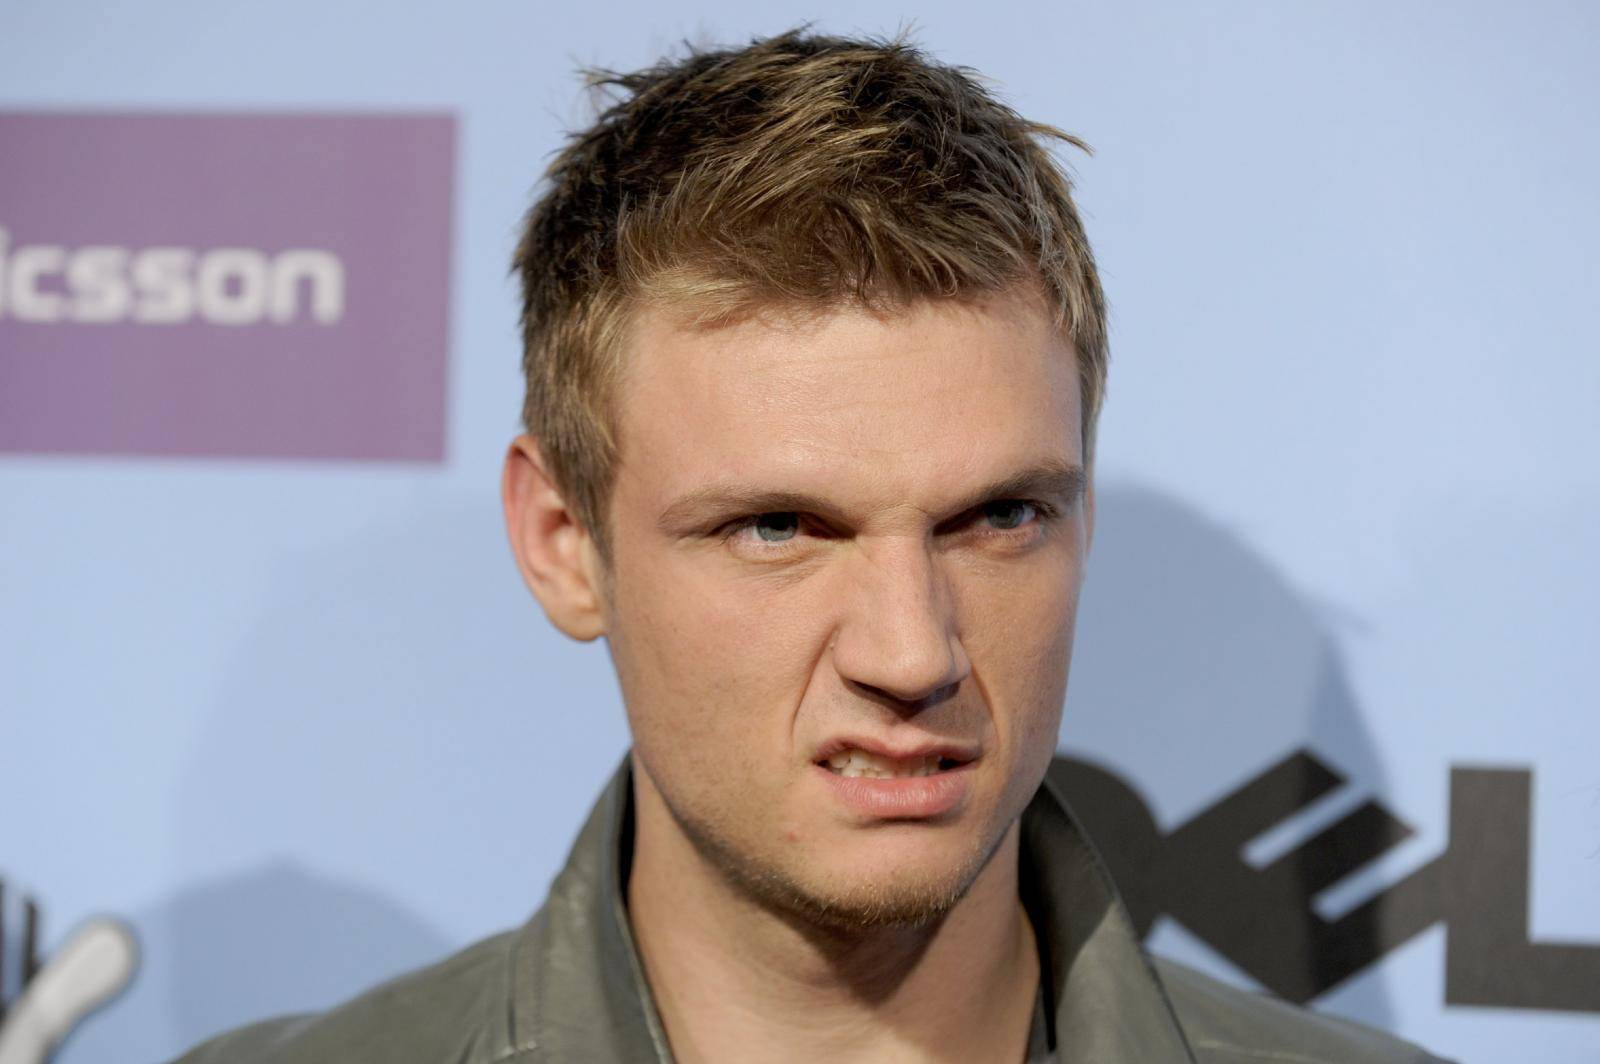 MTV Europe Music Awards - Nick Carter